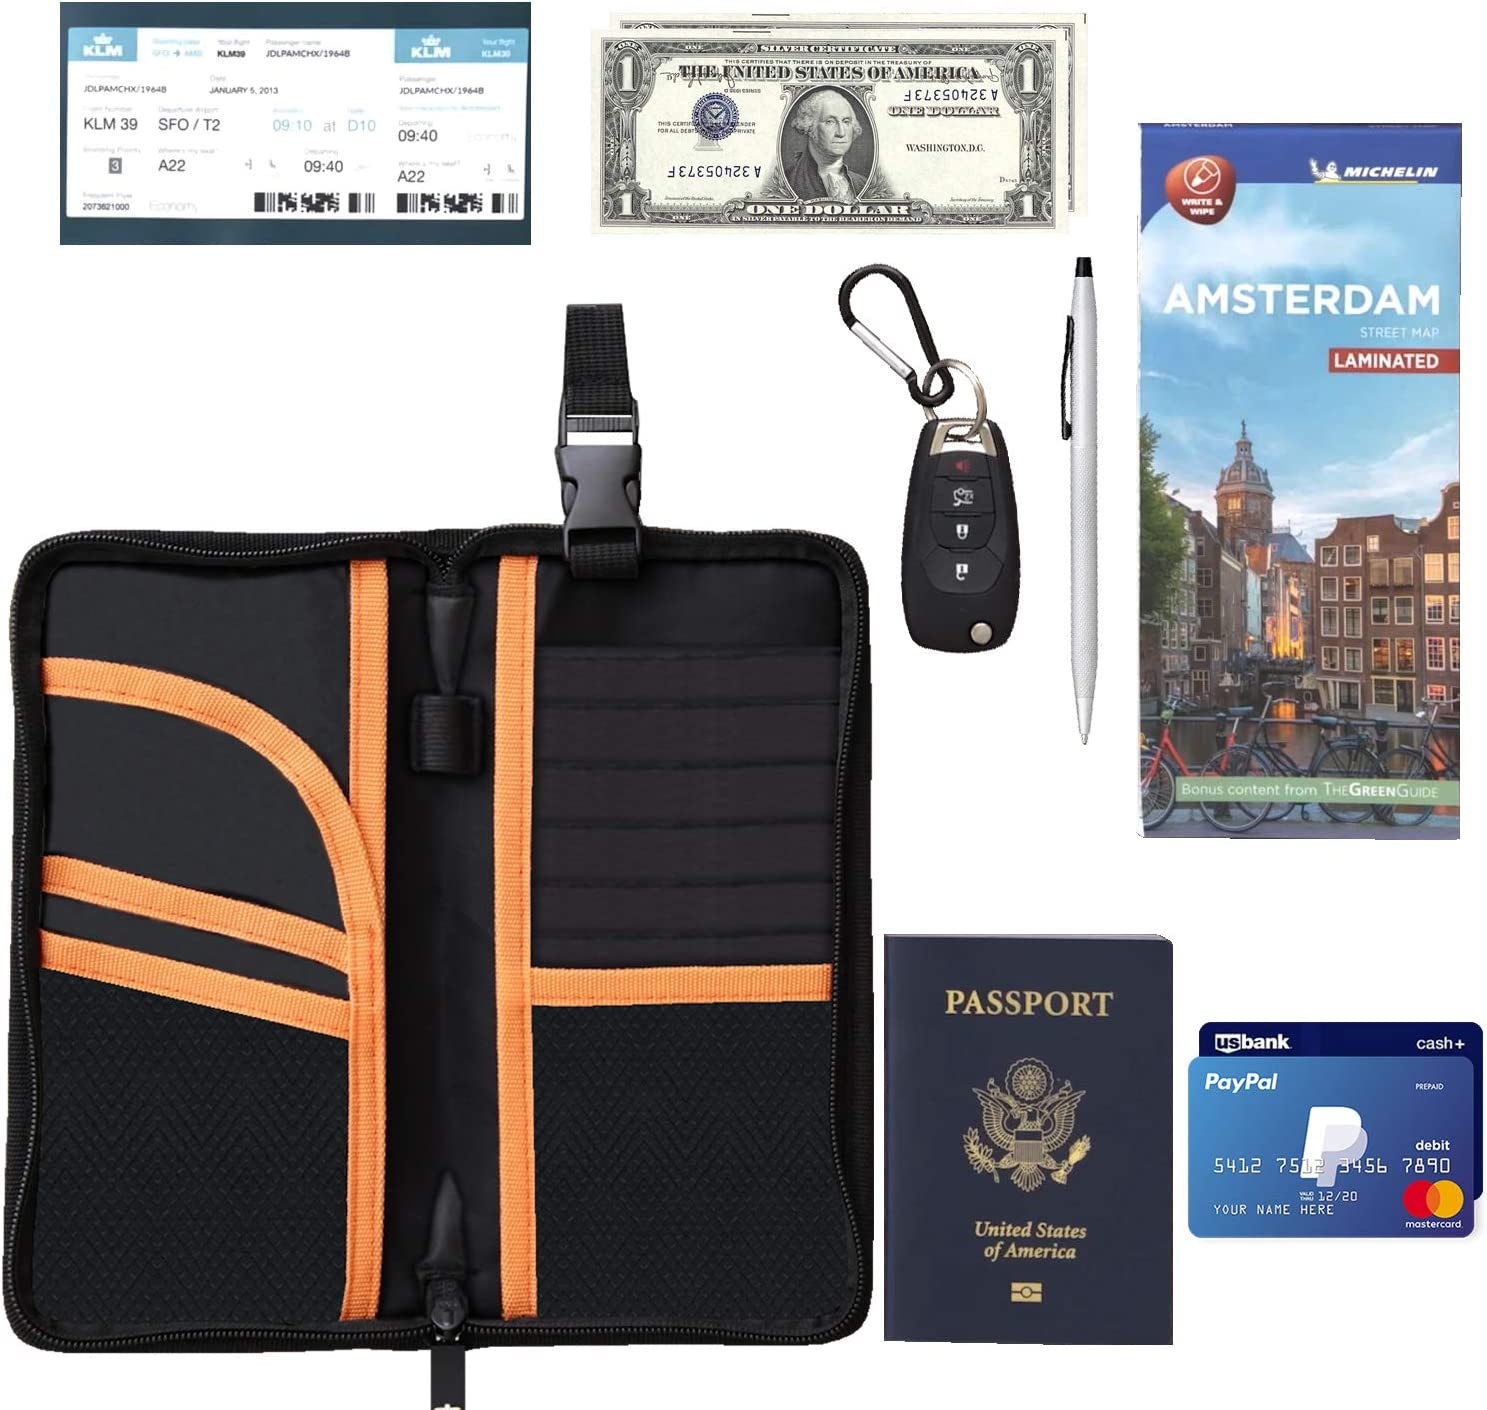 Urbo Premium and Durable Travel Passport Wallet for travel Documents ID Cards and Important Papers Currency Flight Tickets Driving Licence Credit Cards Integrated Key Hook /& Pen Holder